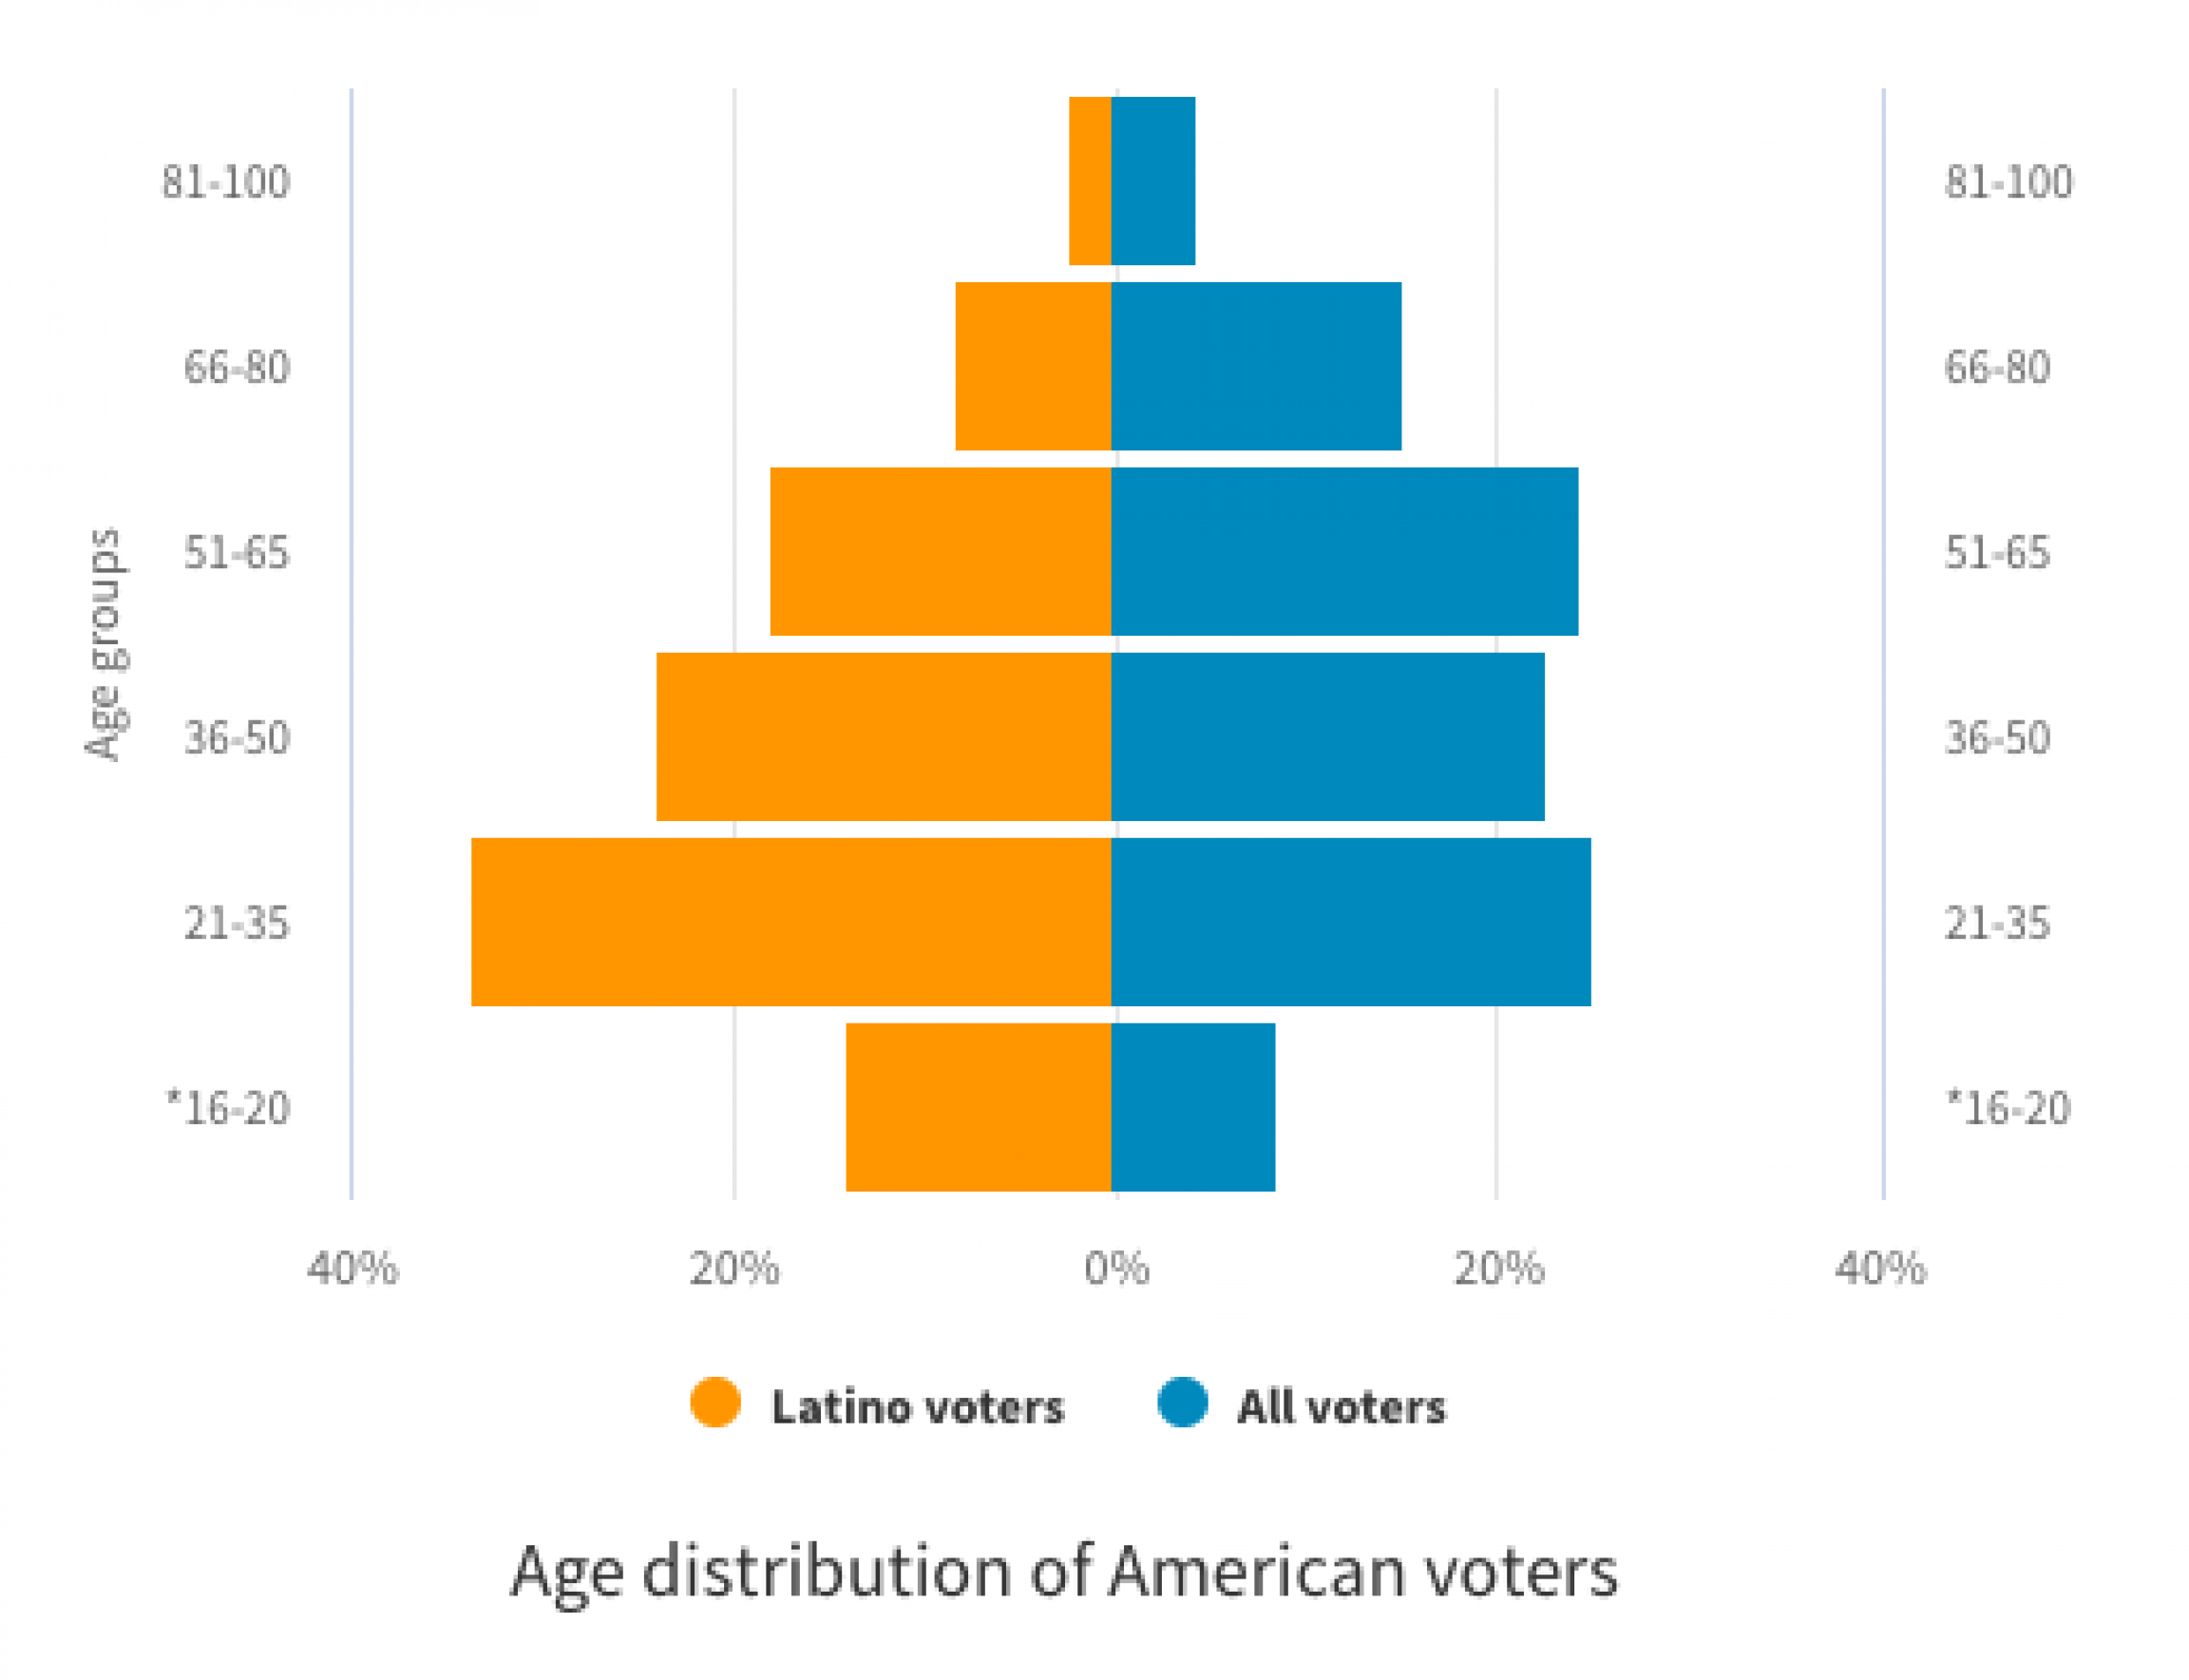 Age distribution of American voters